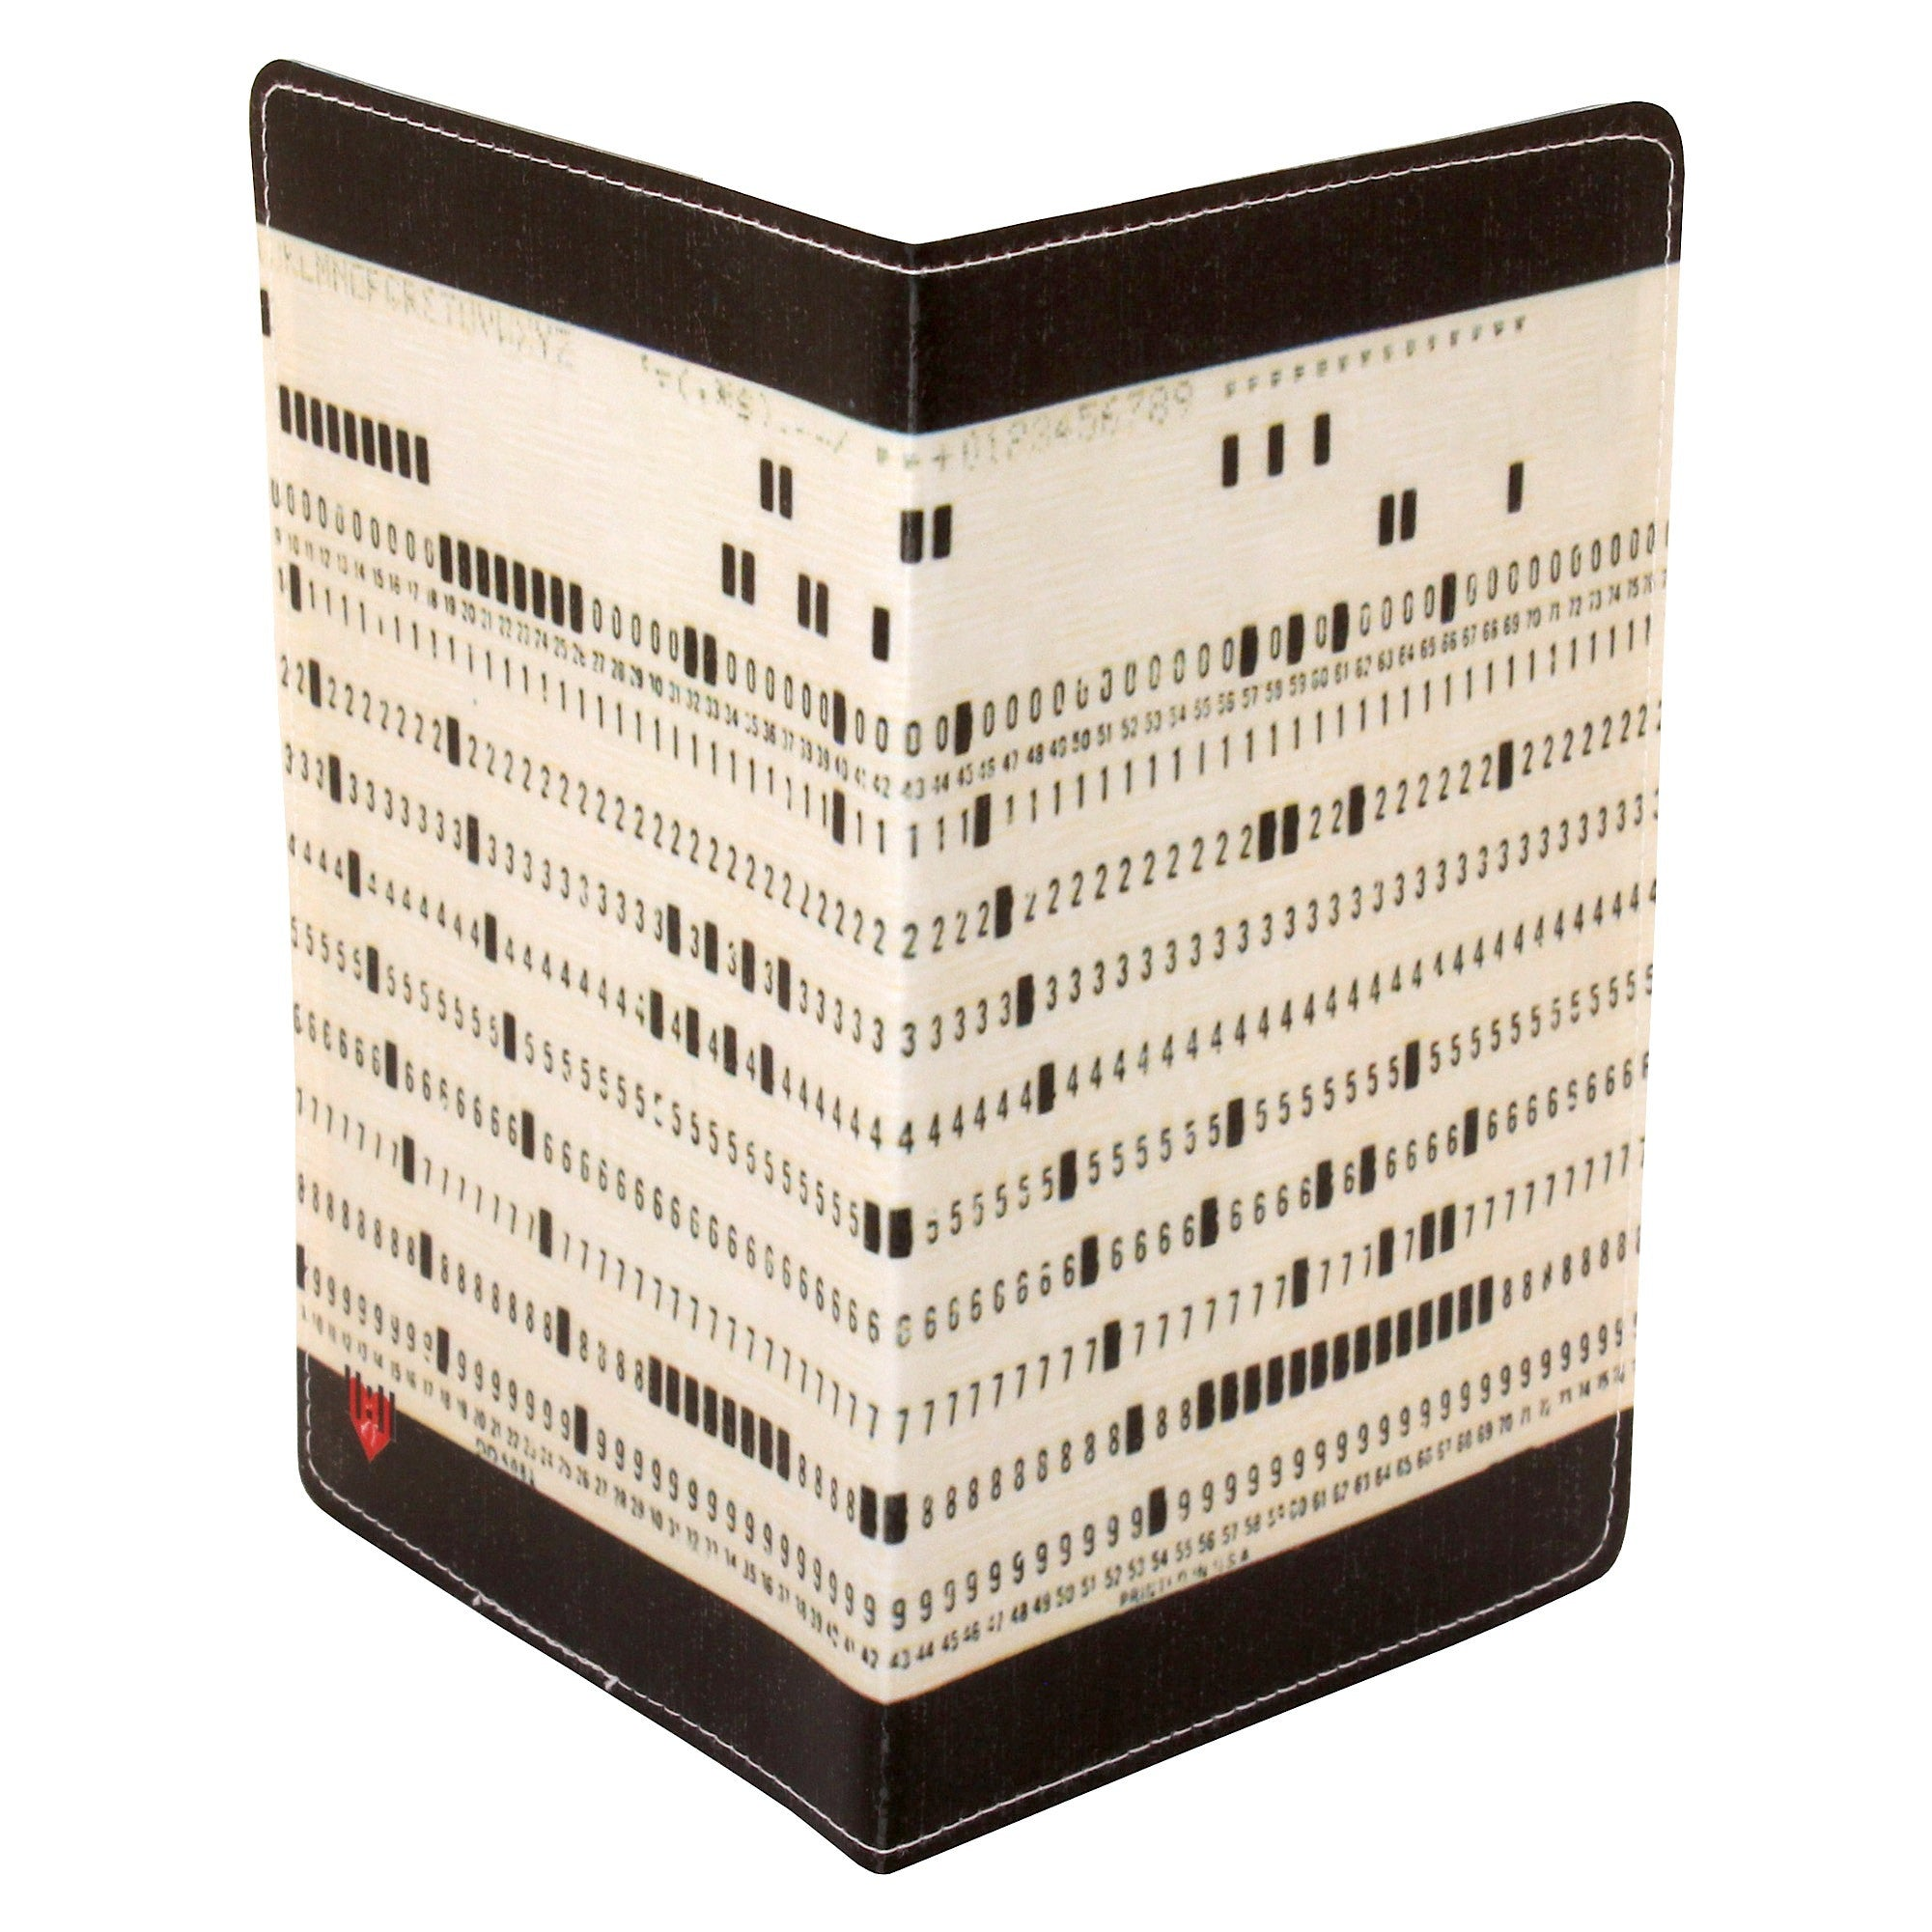 Computer Punch Card Travel Passport Holder